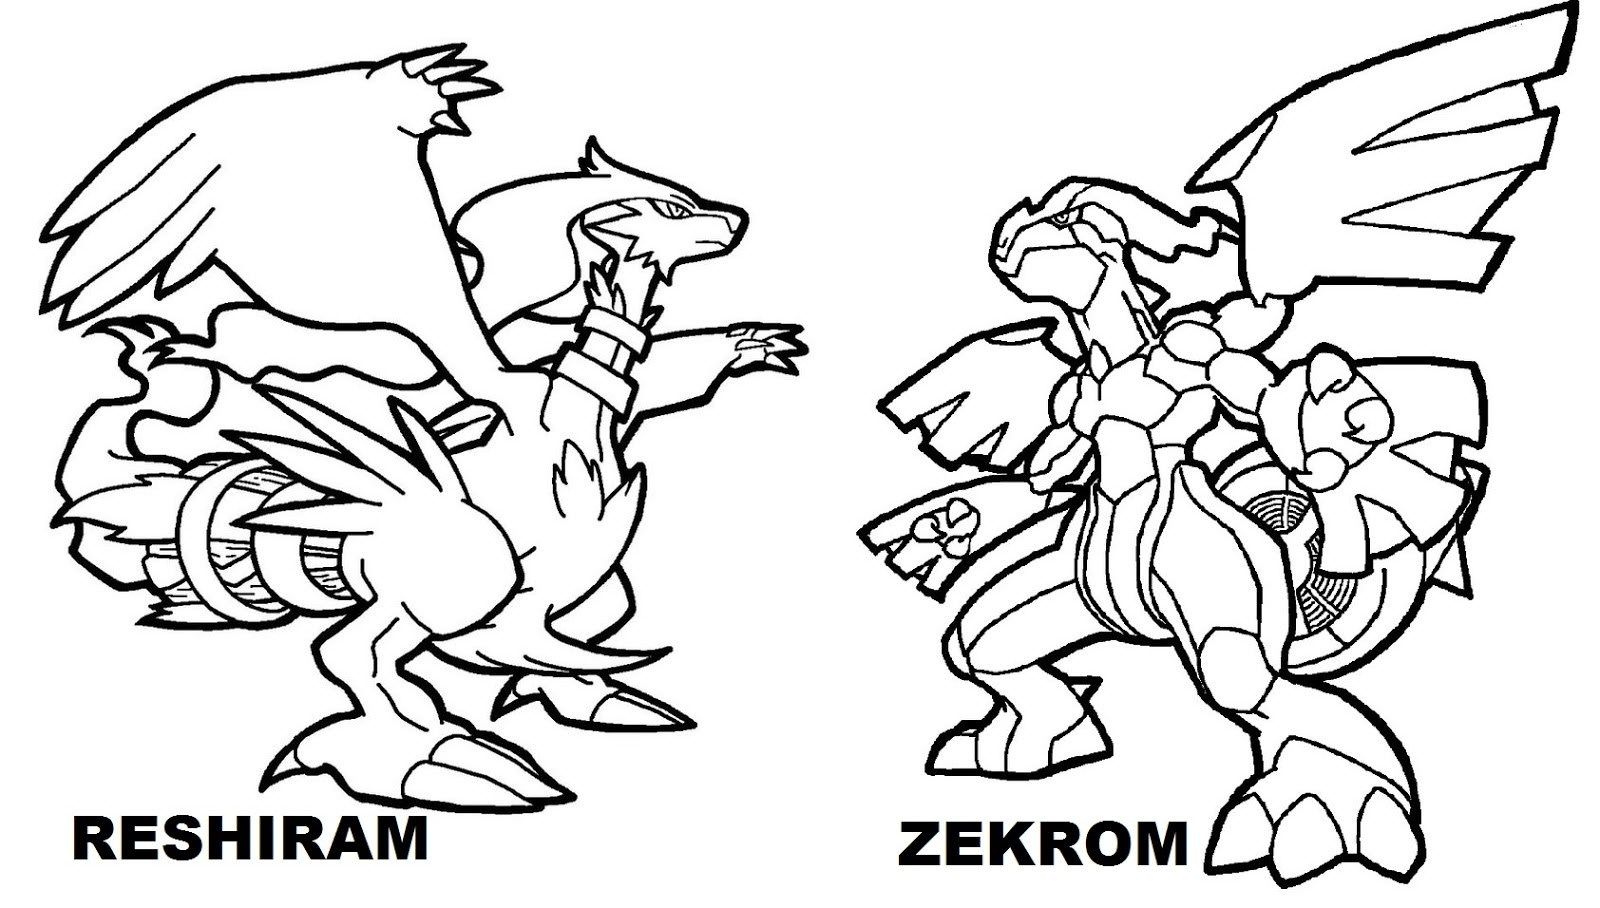 1600x908 Pokemon Reshiram And Zekrom Coloring Pages